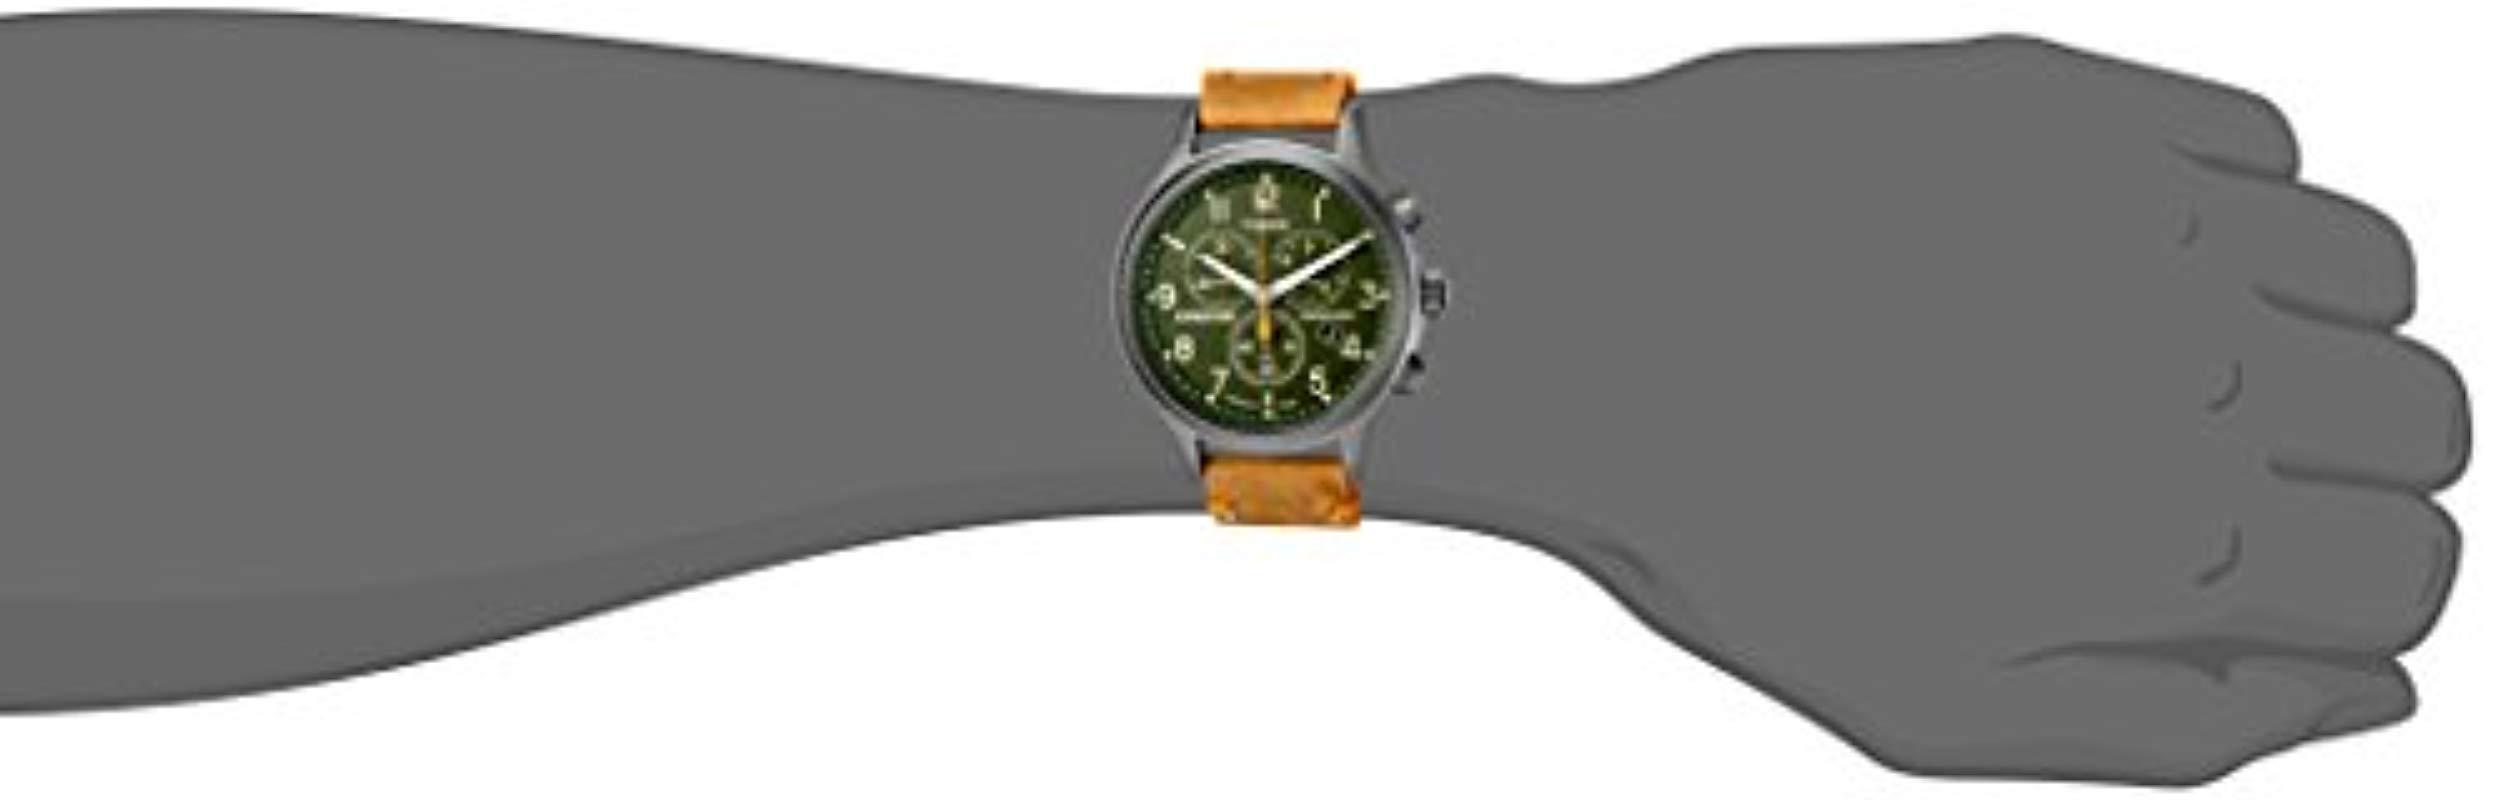 4439ed3ca Timex - Green Expedition Scout Chronograph Watch for Men - Lyst. View  fullscreen